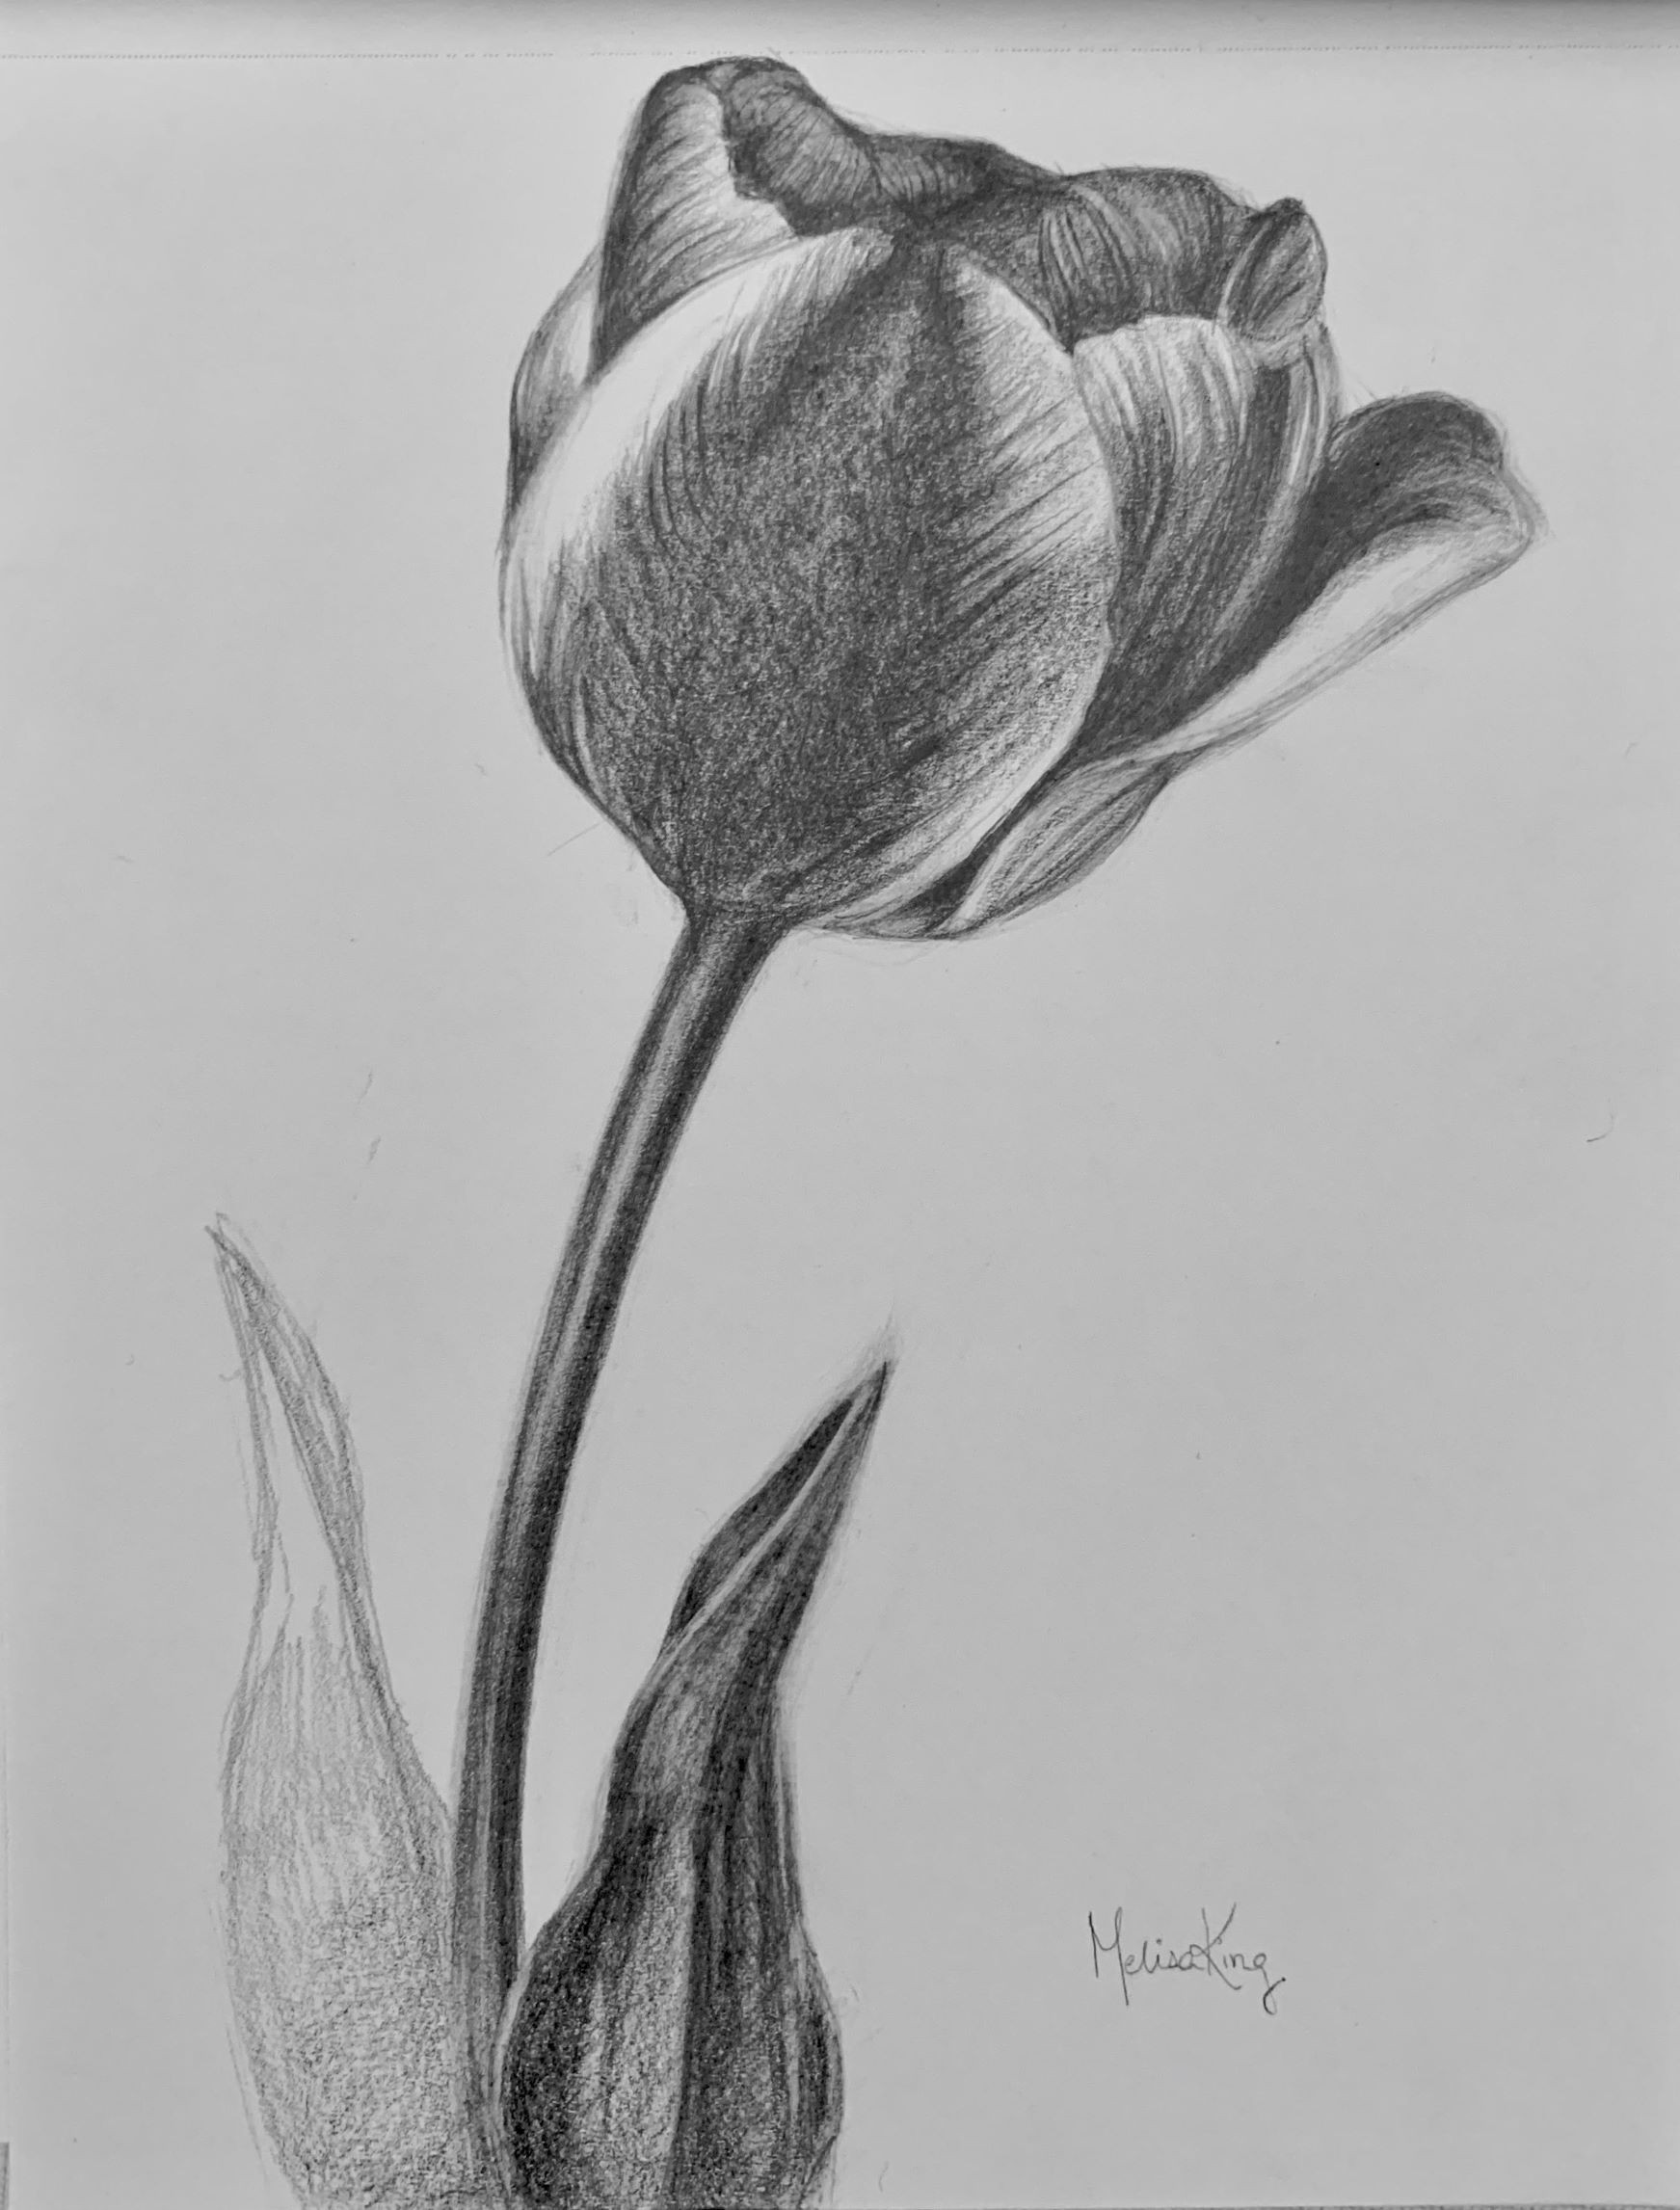 Tulip, Pencil on Paper, 15x21 cm